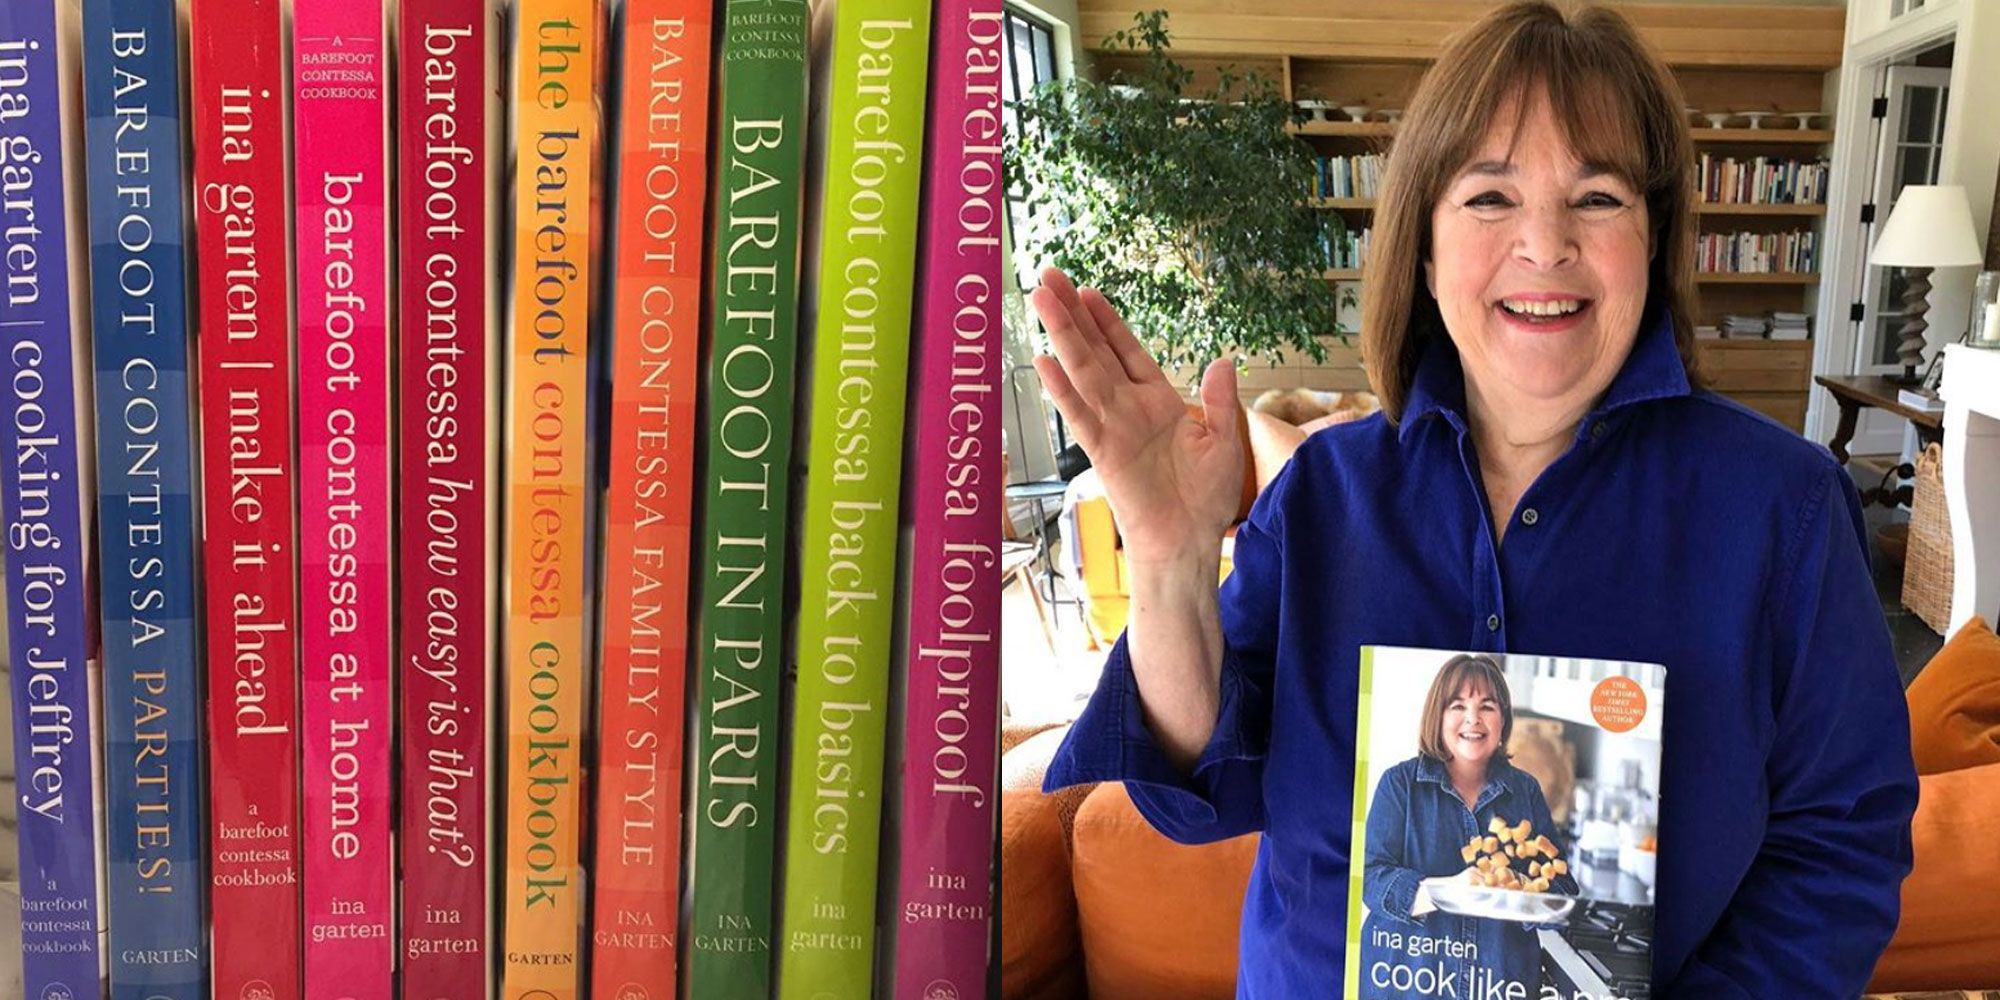 A Guide To All 11 Of Ina Garten's Cookbooks - Barefoot